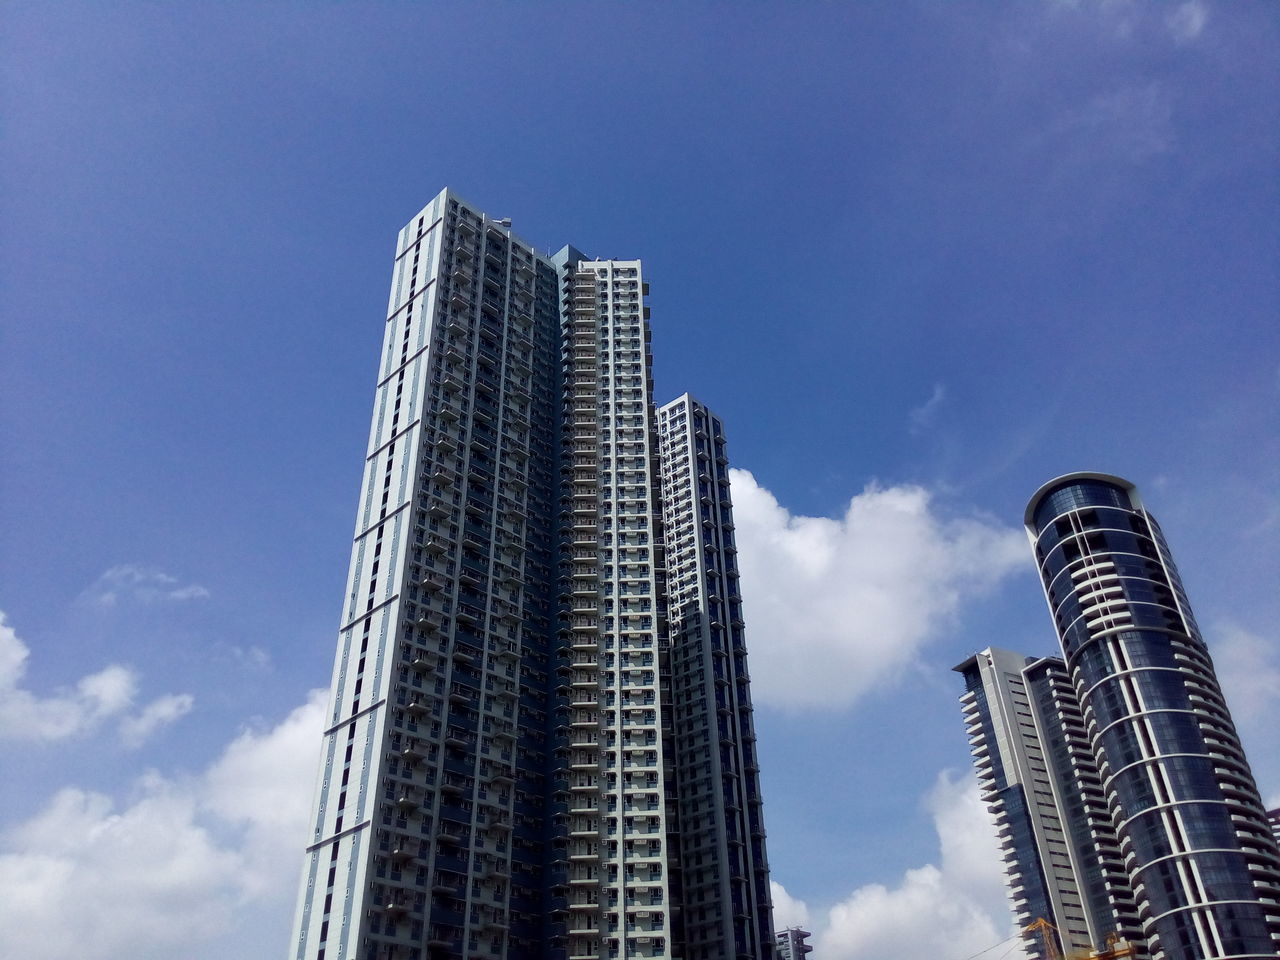 skyscraper, low angle view, sky, modern, architecture, city, no people, outdoors, day